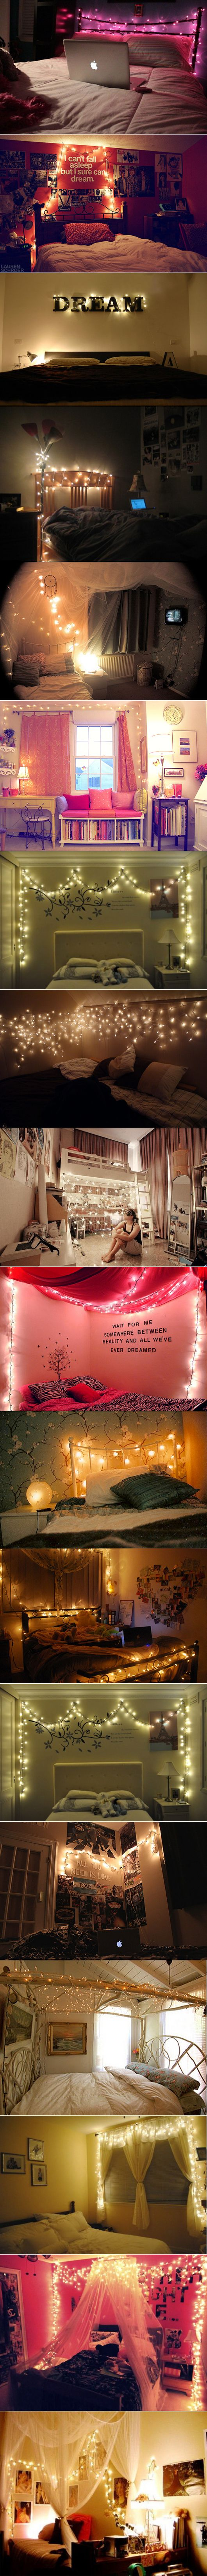 I want lights in my room!